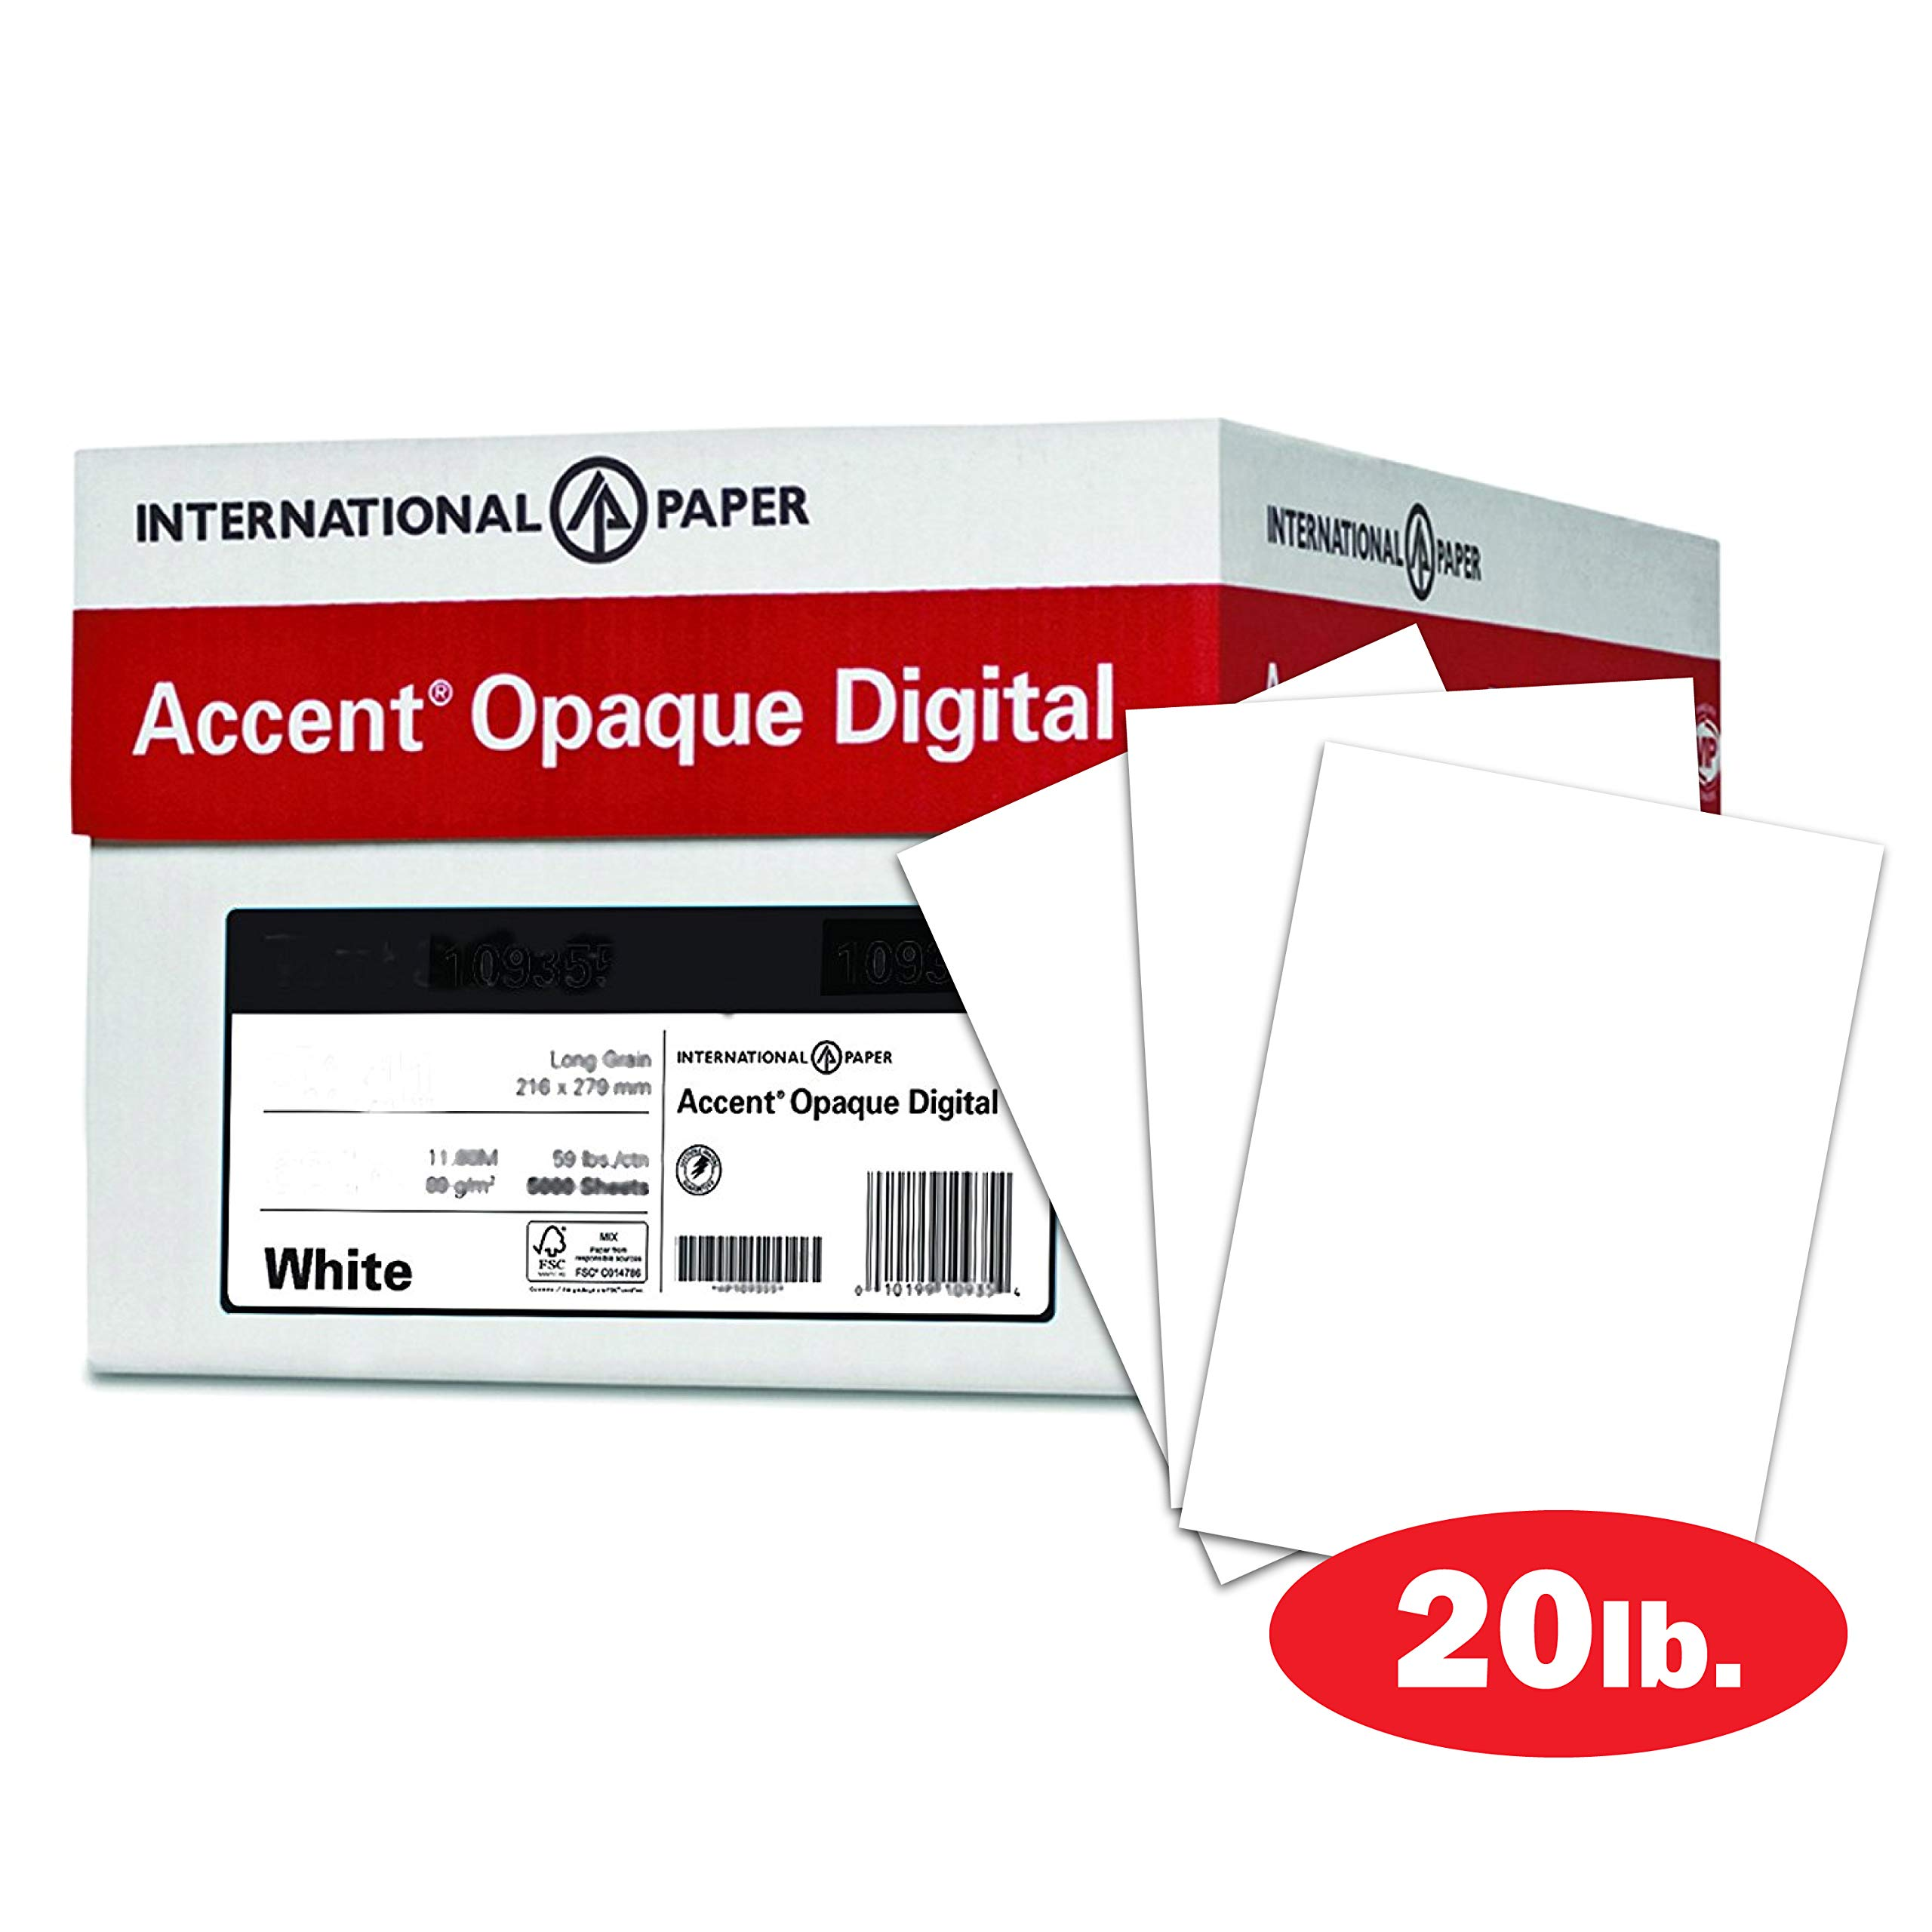 Accent Opaque, White 20lb Paper, 50lb Text, 74gsm, 12 x 18, 97 Bright, 5 Reams / 2,500 Sheets - Smooth Paper, Text Heavy Paper (188082C)